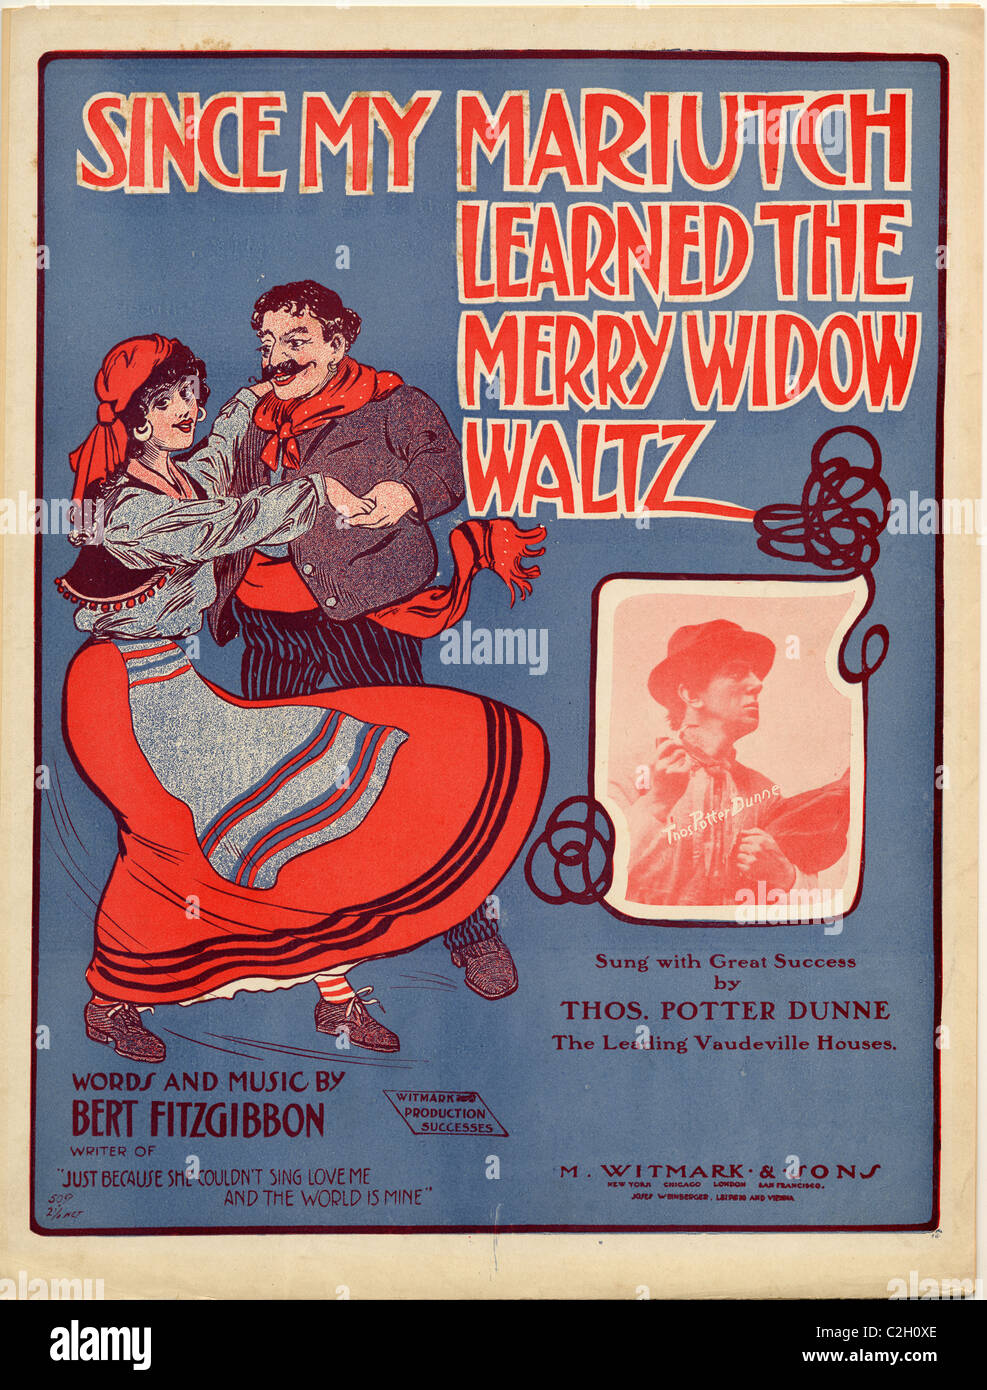 Since my Mariutch Learned the Merry Widow Waltz - Stock Image